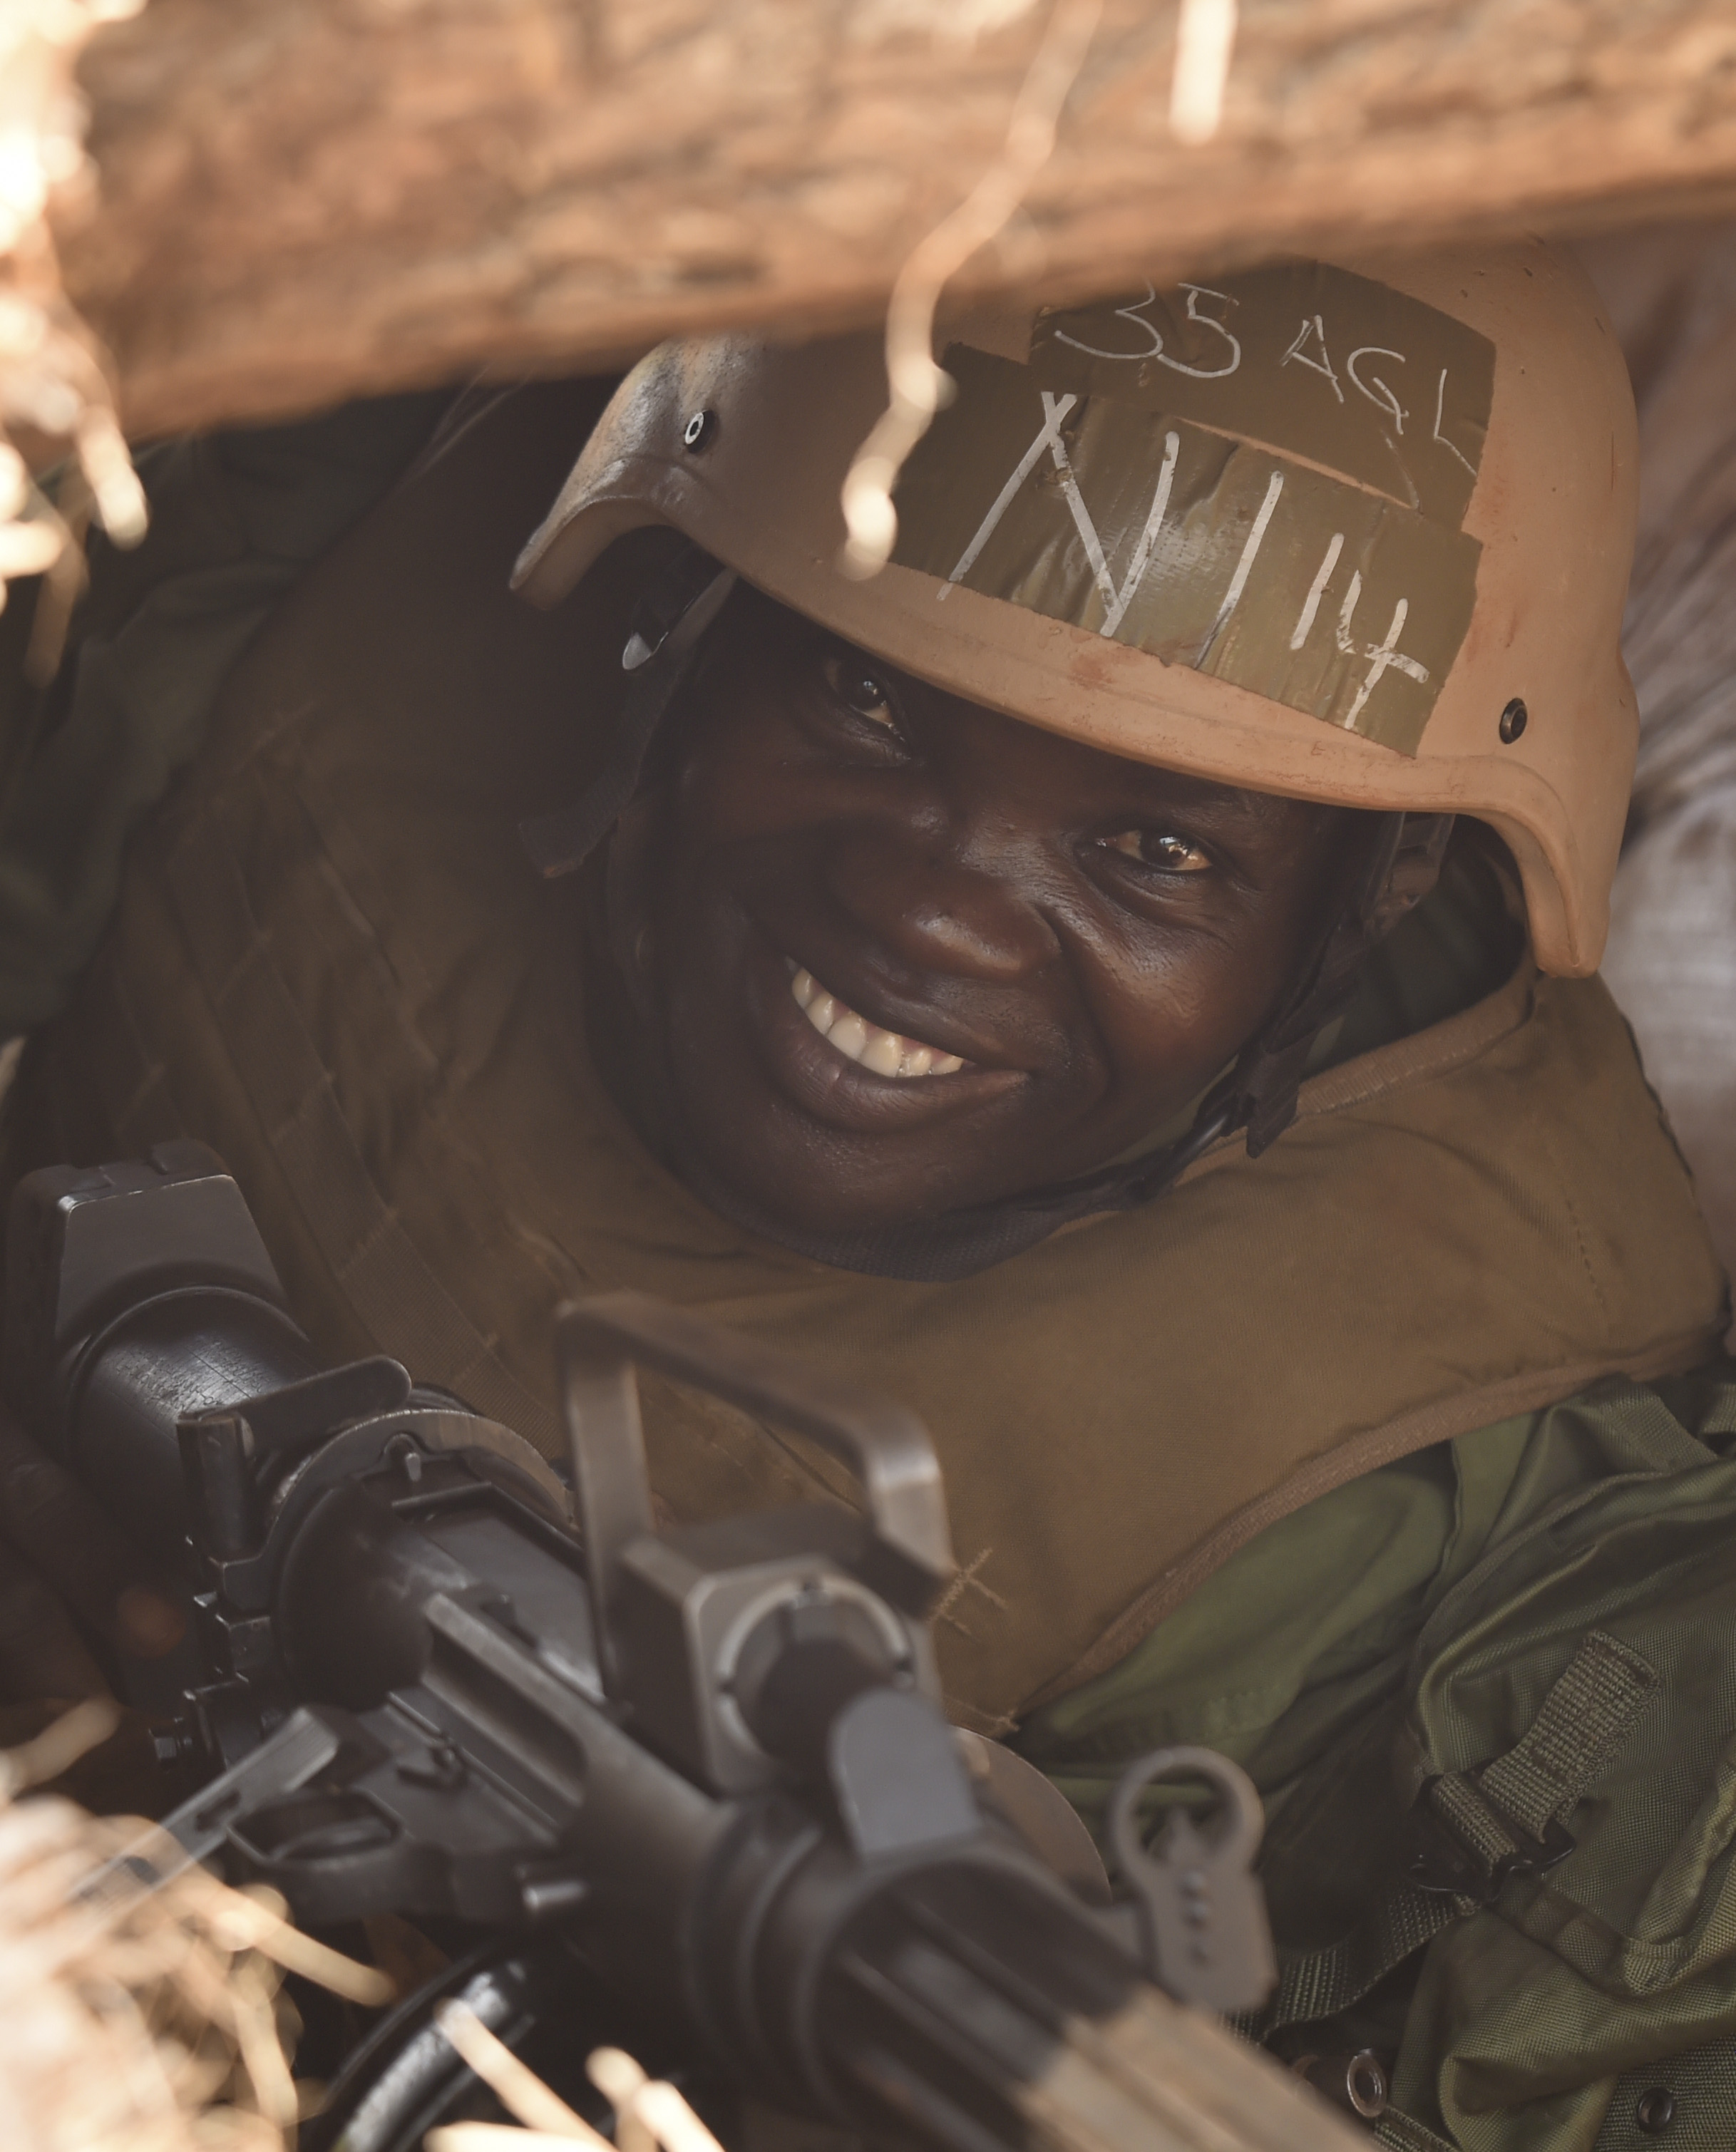 A Uganda People's Defense Force soldier, Ugandan Battle Group 22 (UGABAG 22), sits in a bunker before a live fire exercise at Camp Singo, Uganda, Feb. 27, 2017. UGABAG 22 will perform common task training, a combat lifesaver course, counter improvised-explosive-device training, and live fire training as a part of their pre-deployment preparation. (U.S. Air National Guard photo by Staff Sgt. Penny Snoozy)